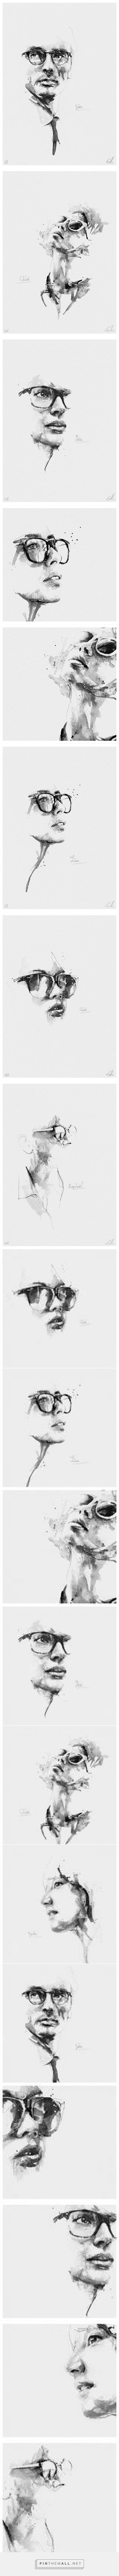 Spontaneous and Realistic Black and White Pencil Portraits – Fubiz Media - created via https://pinthemall.net